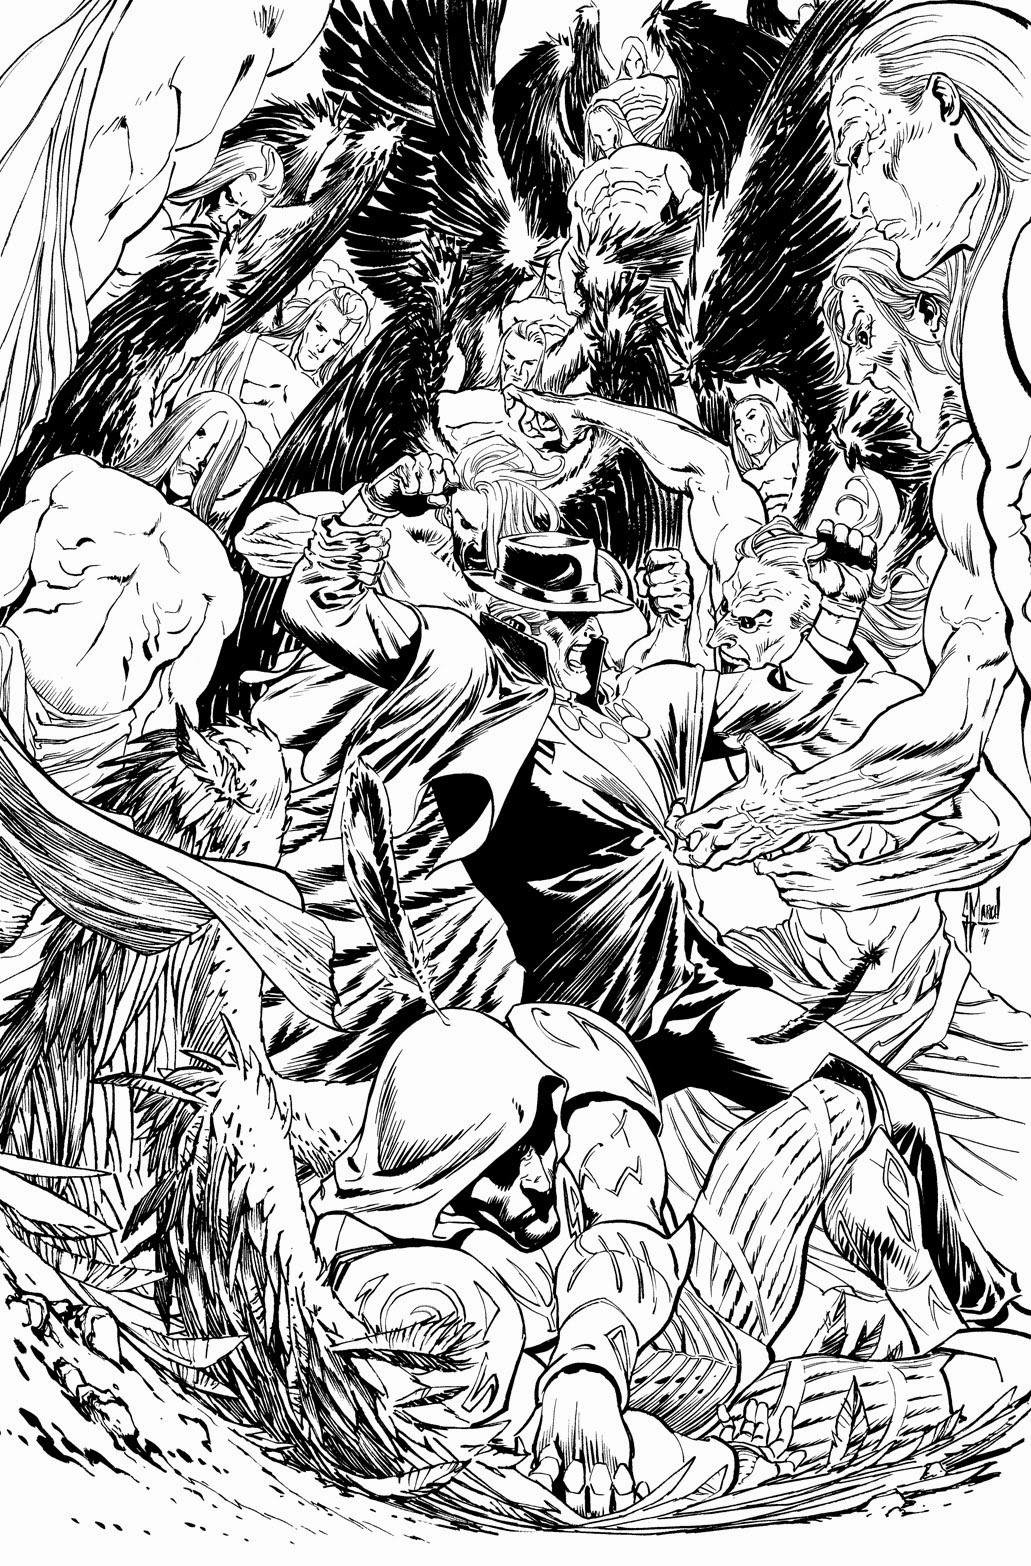 Making of a cover: PHANTOM STRANGER #21 by Guillem March